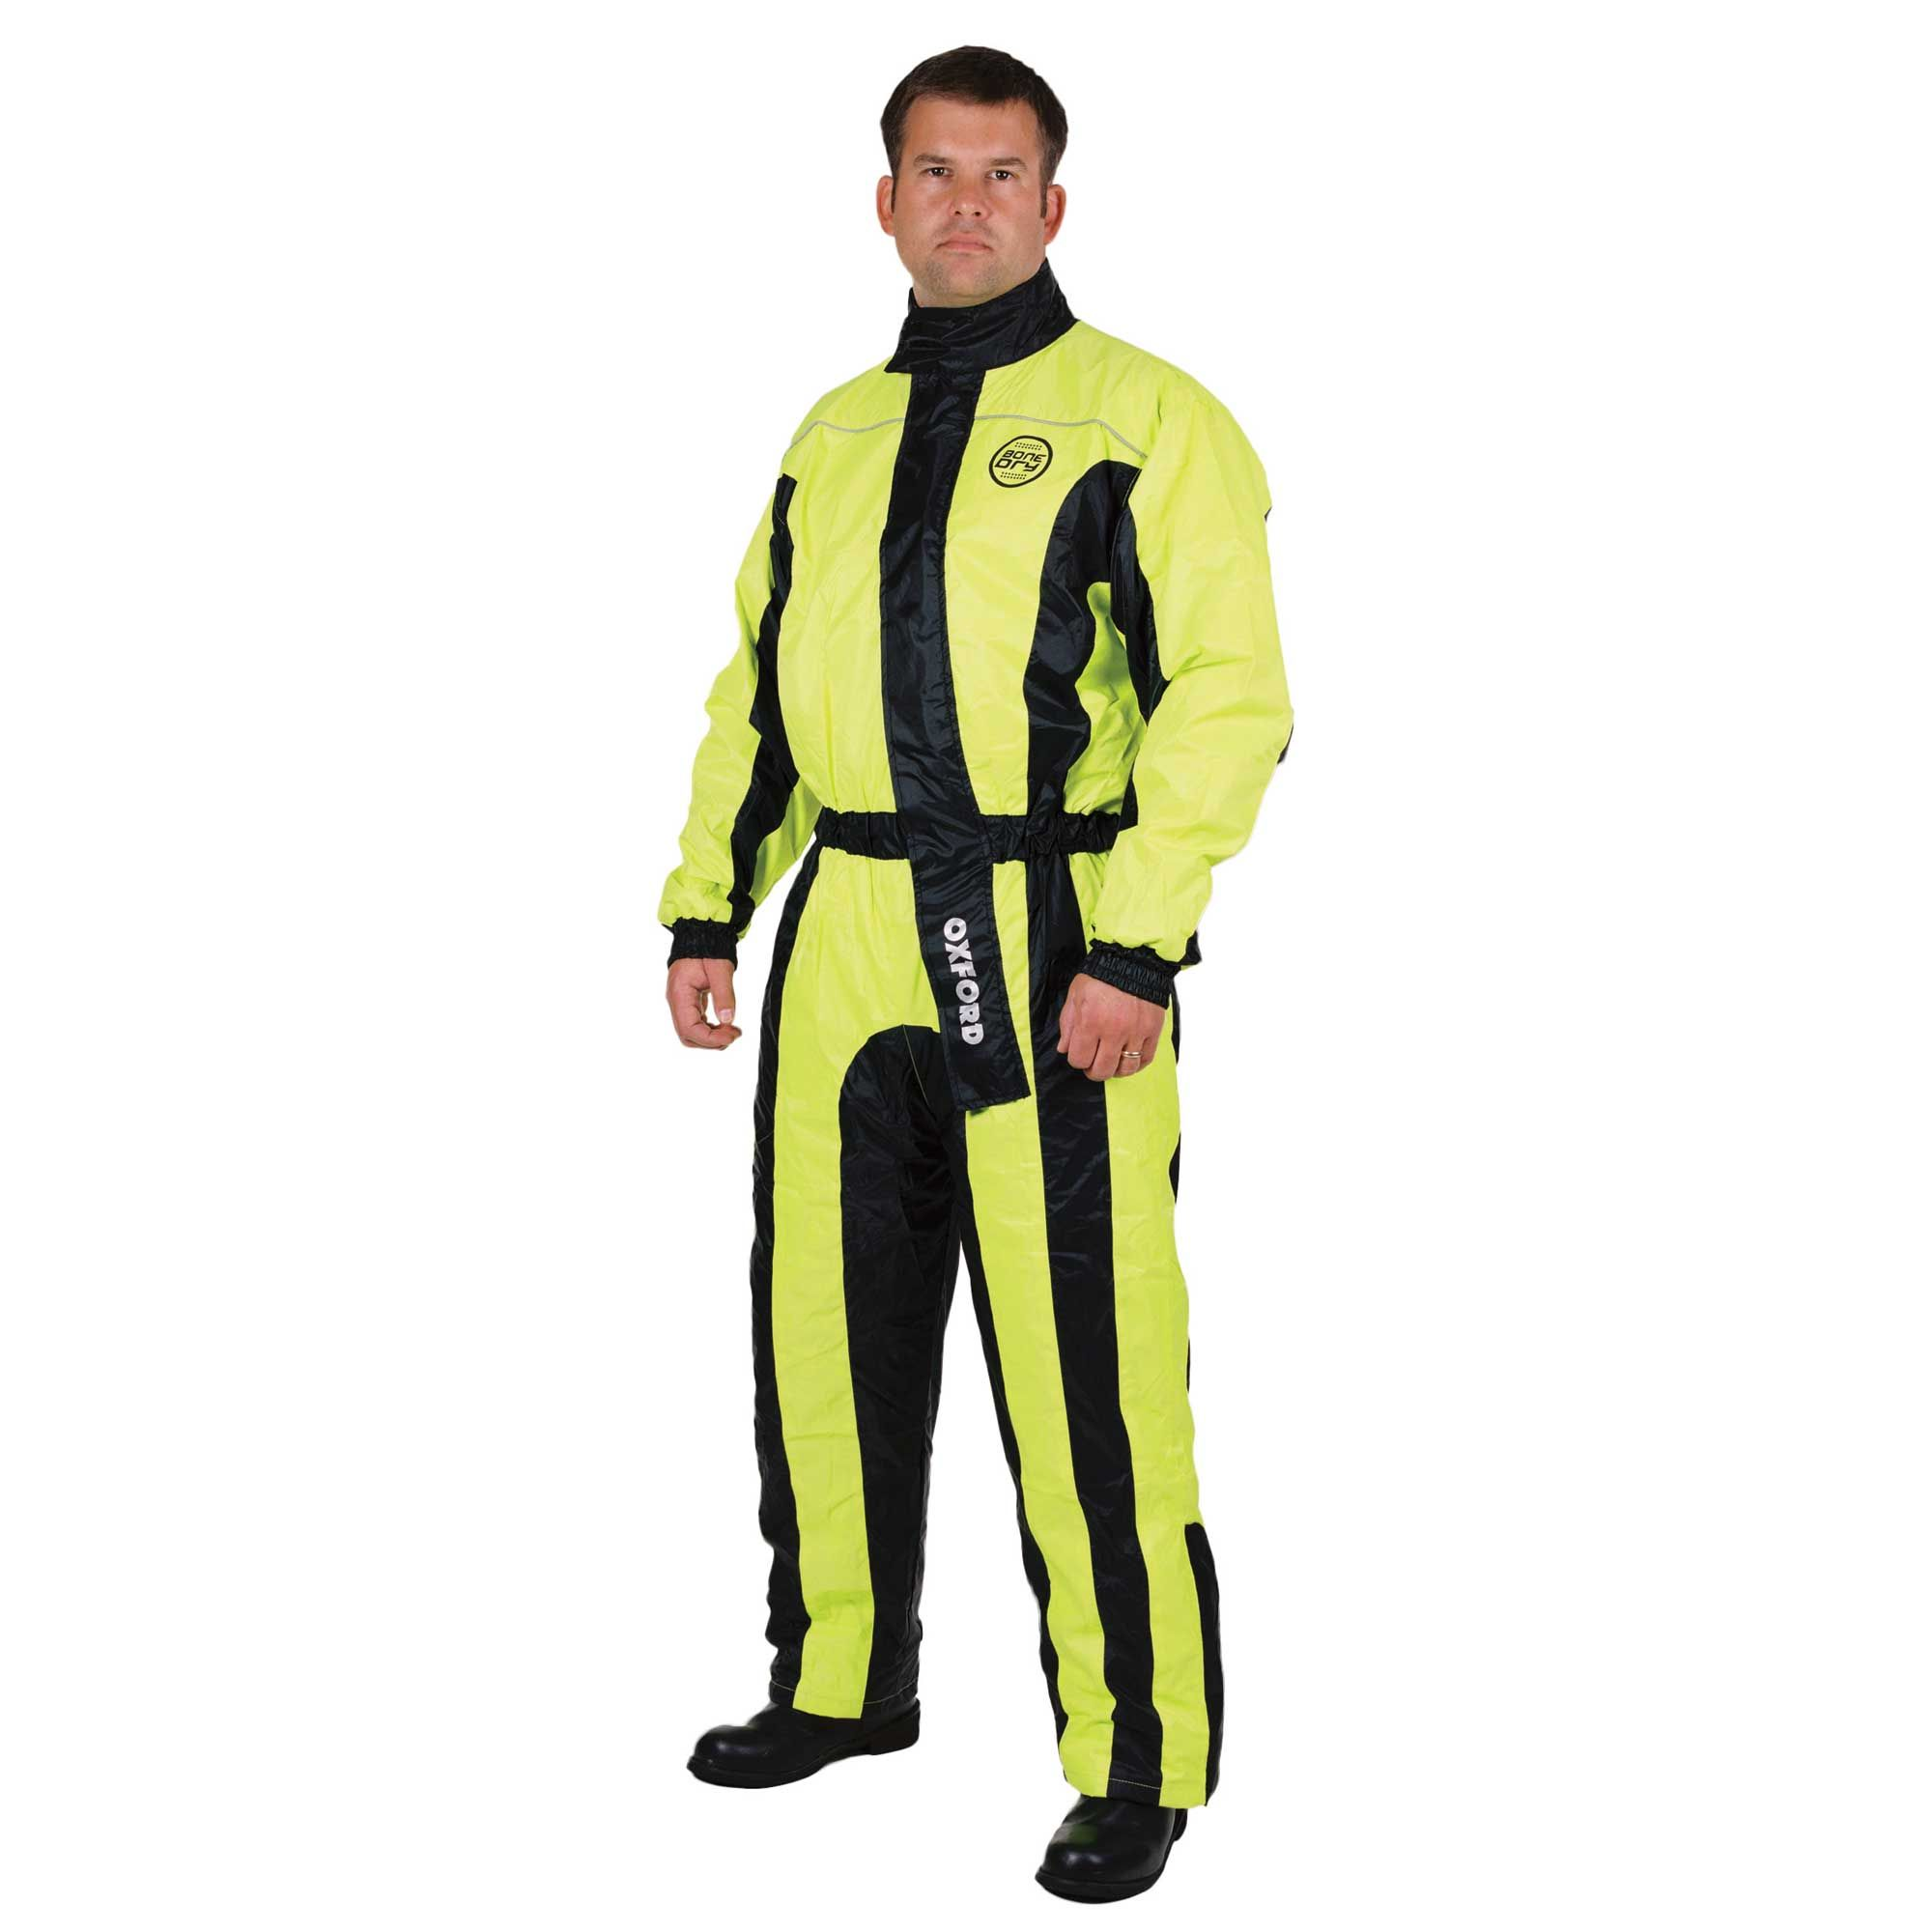 Oxford Bone Dry Over Suit Mens Snowsuit Motorcycle Outfit Suits